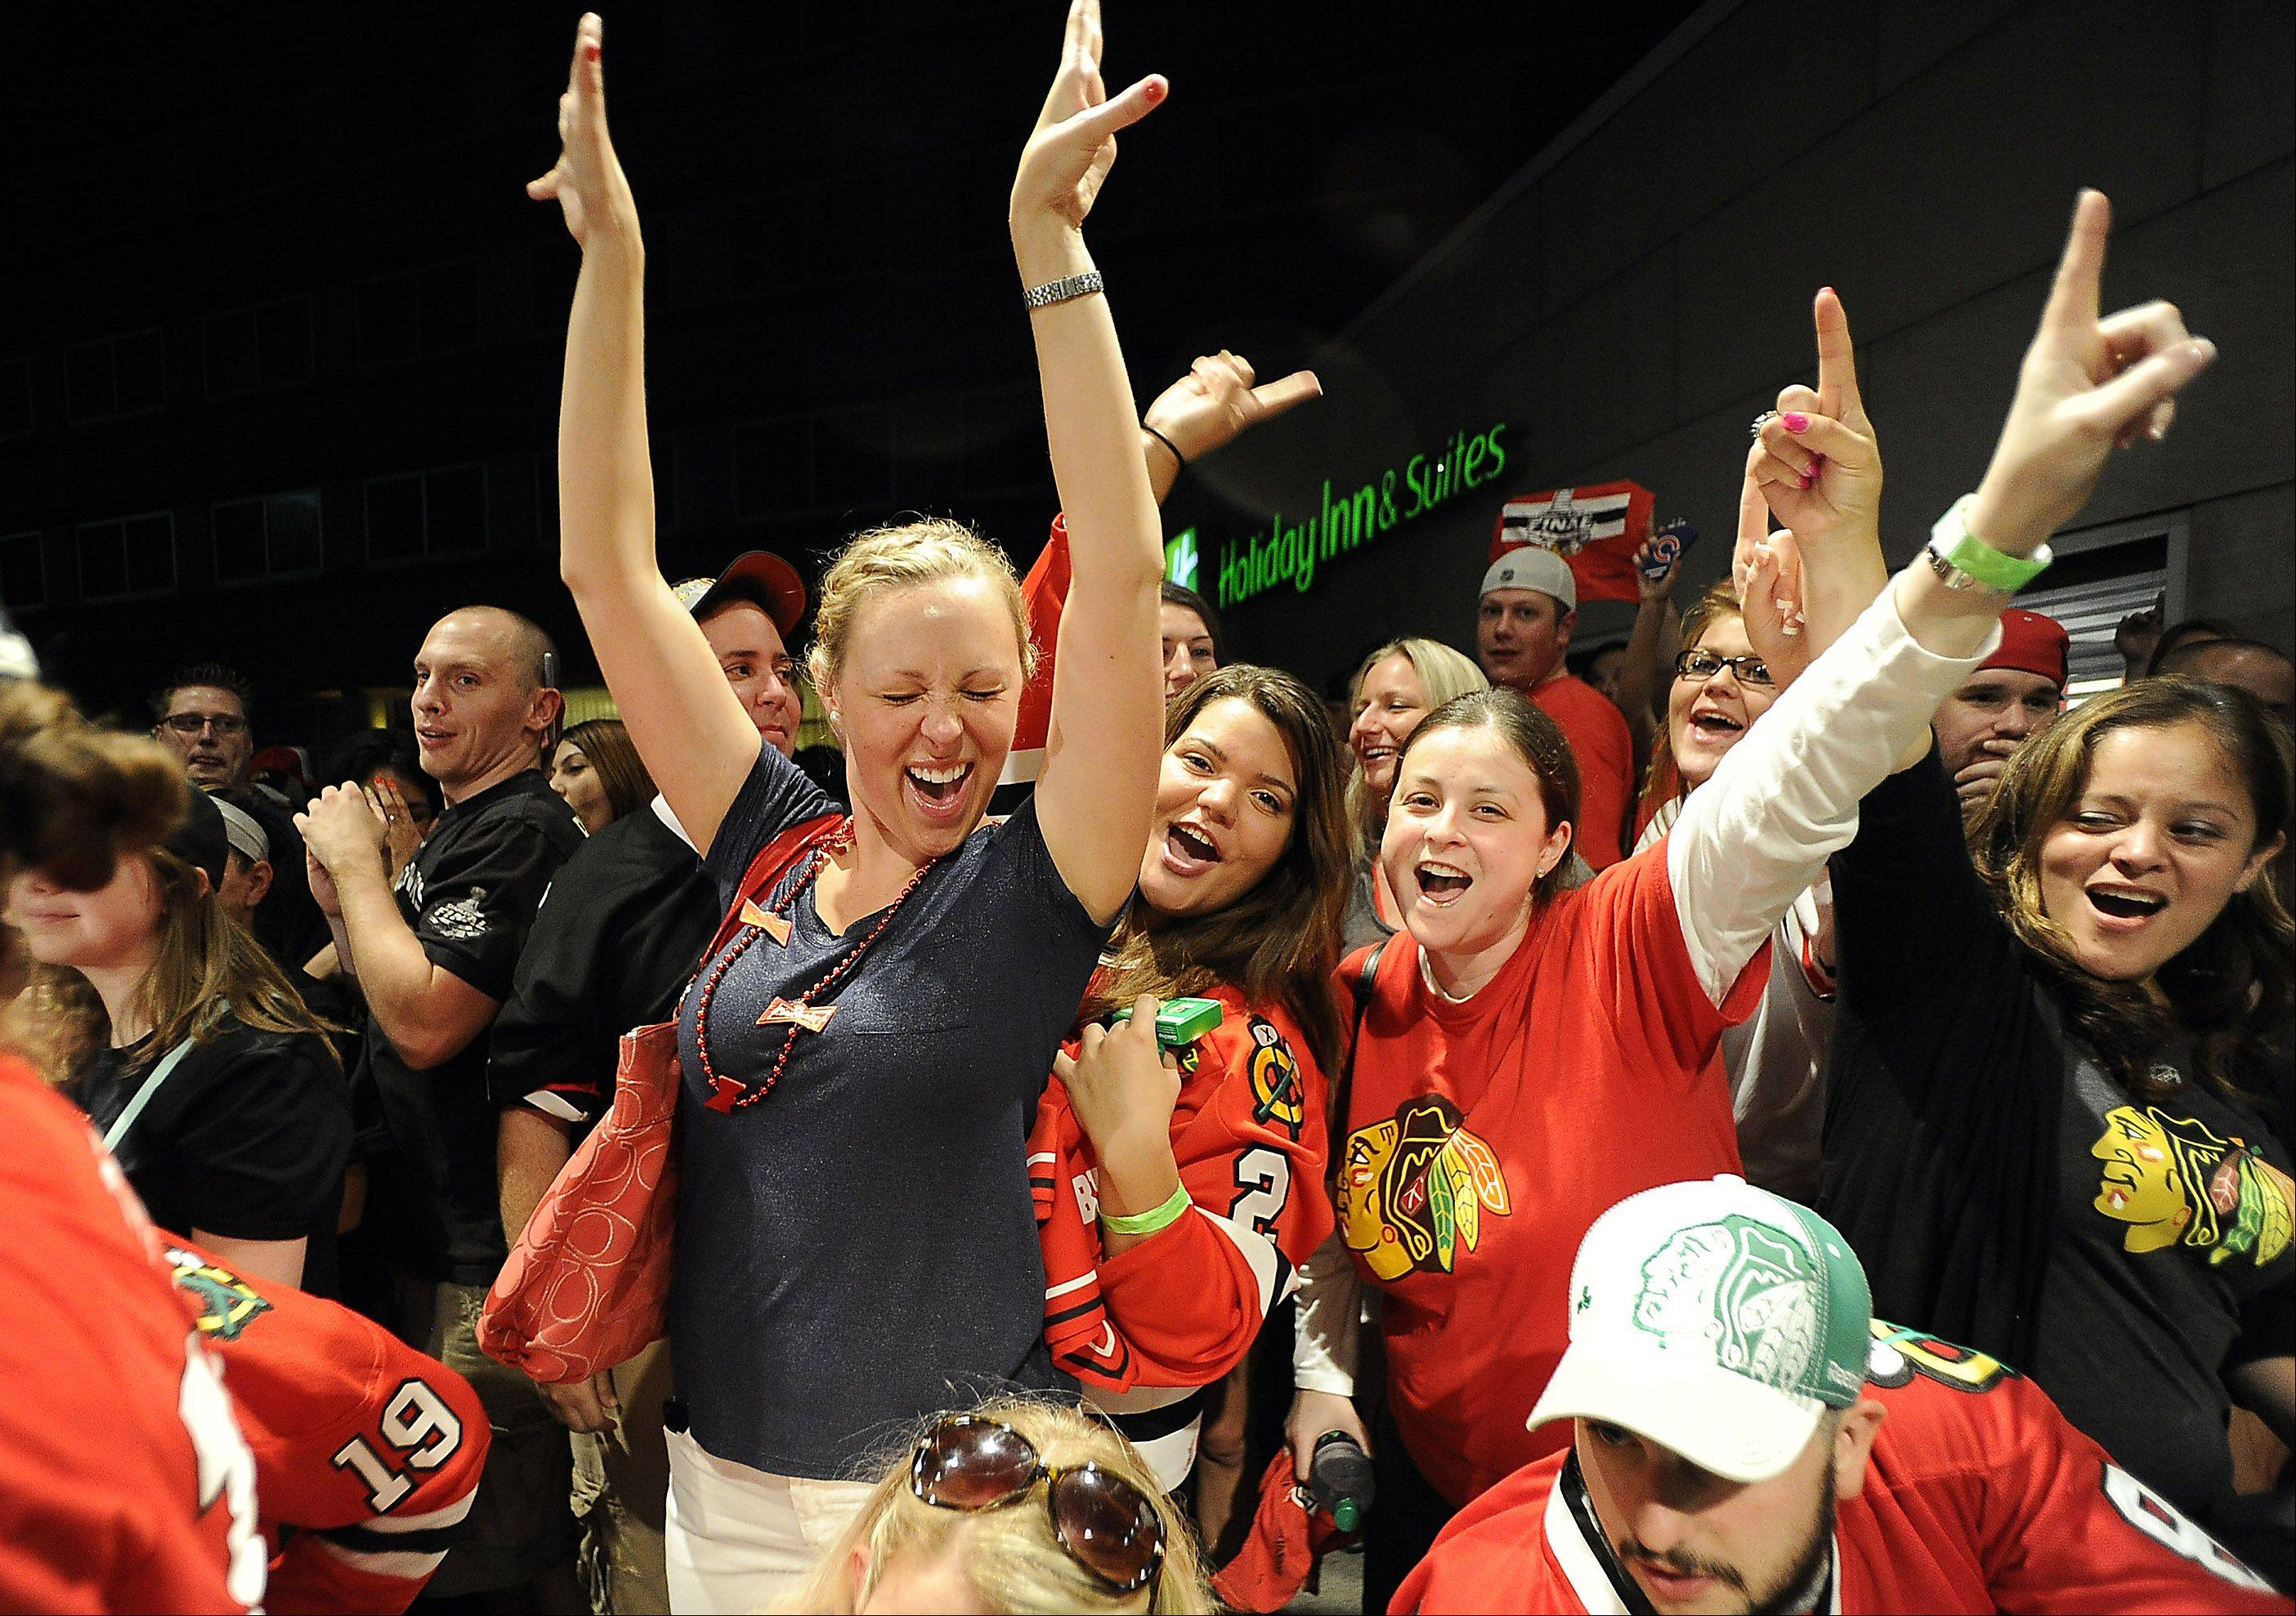 Dani Weadley, 26, of Fox Lake cheers with more than a thousand of her fellow Blackhawks fans at Harry Caray's restaurant in Rosemont as the players arrive carrying the Stanley Cup.